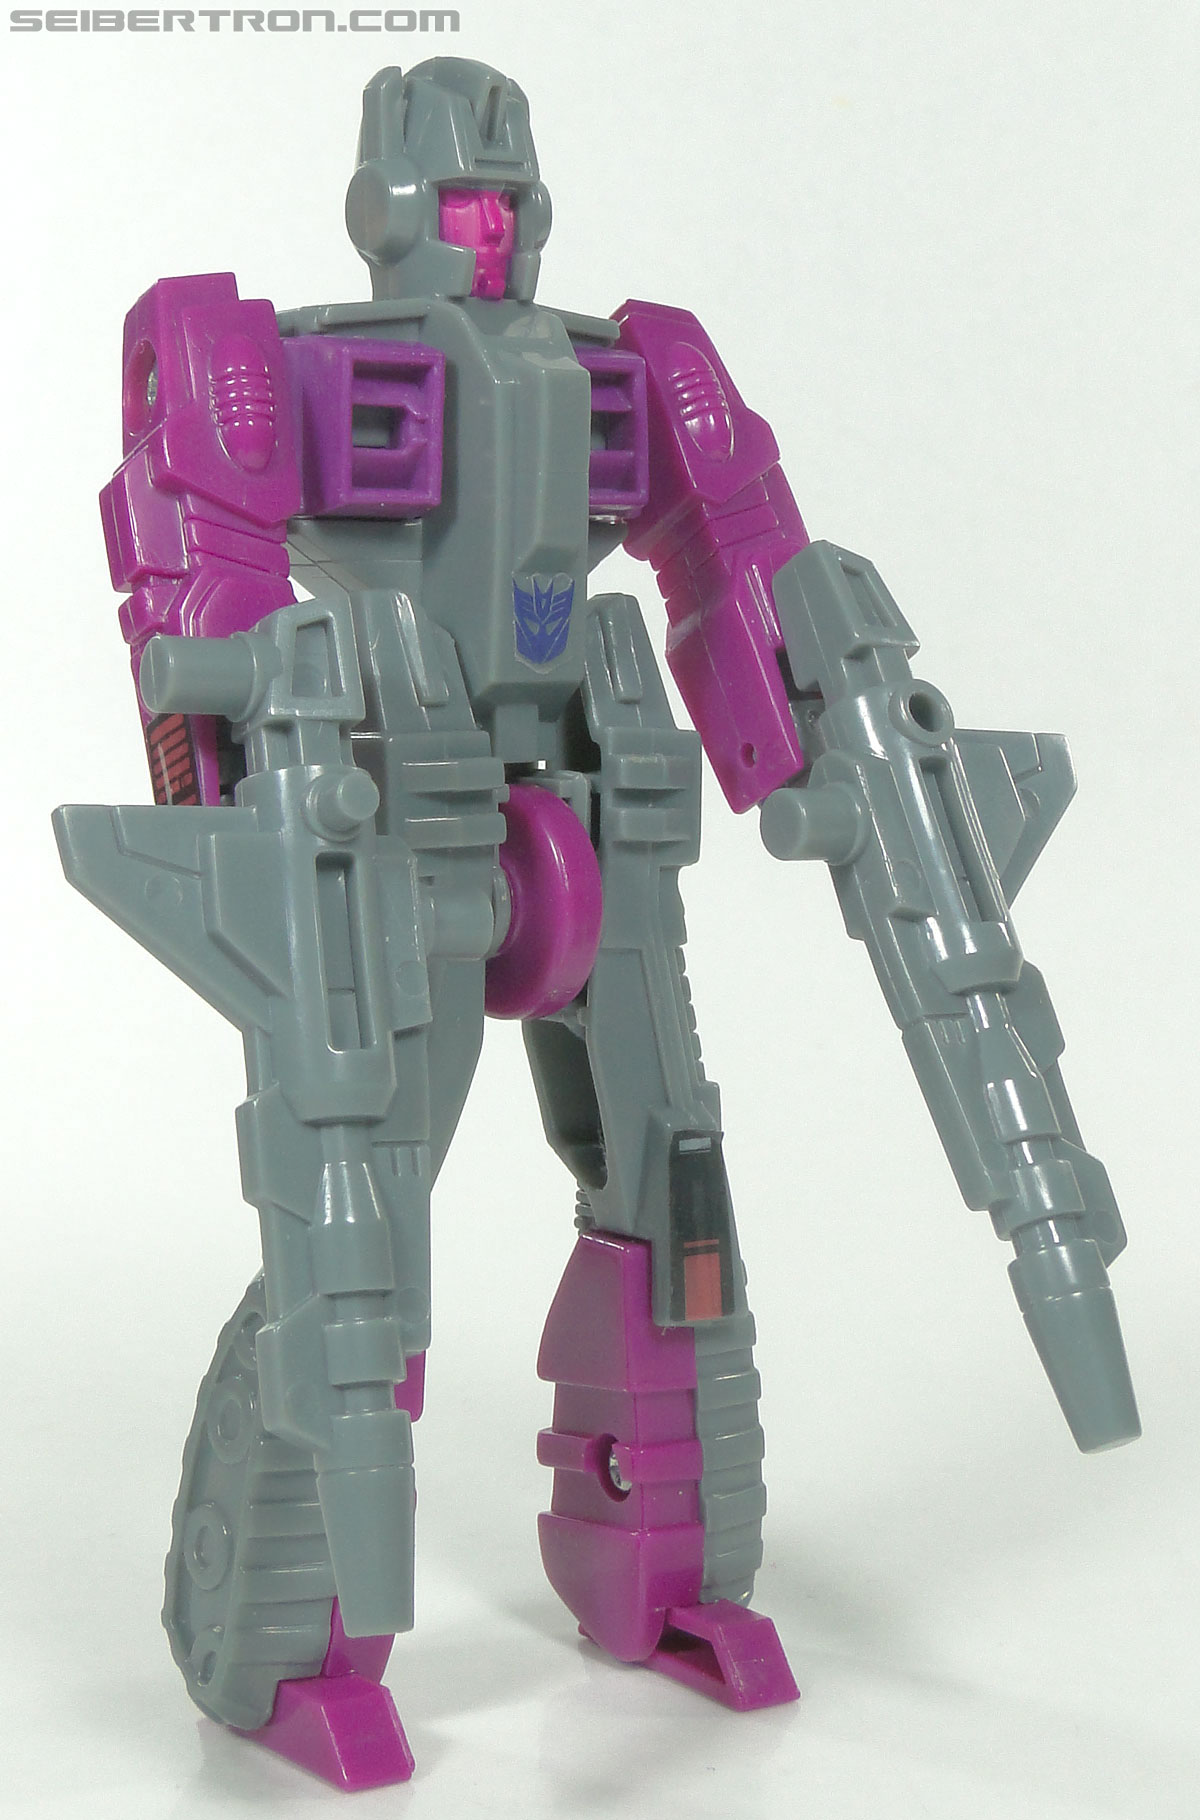 Transformers Super God Masterforce Skullgrin (Dauros) (Image #174 of 196)